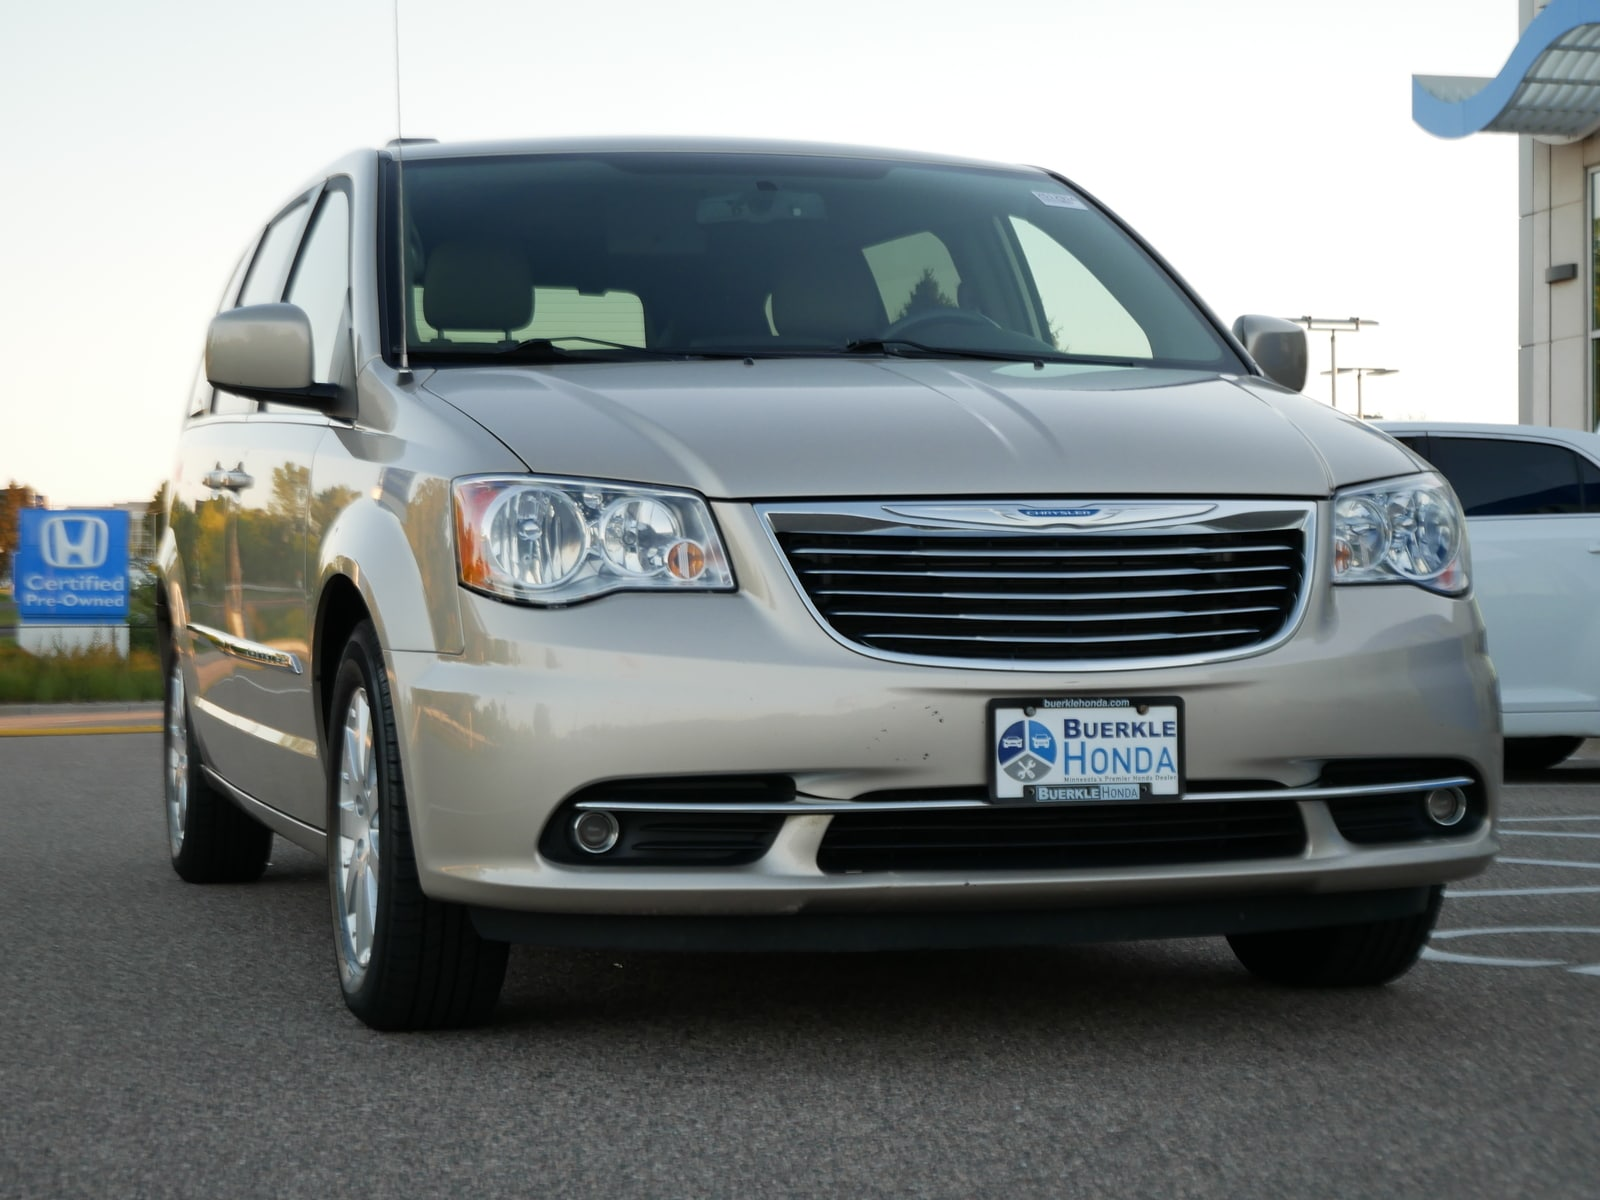 Used 2013 Chrysler Town & Country Touring with VIN 2C4RC1BG2DR558362 for sale in Saint Paul, Minnesota